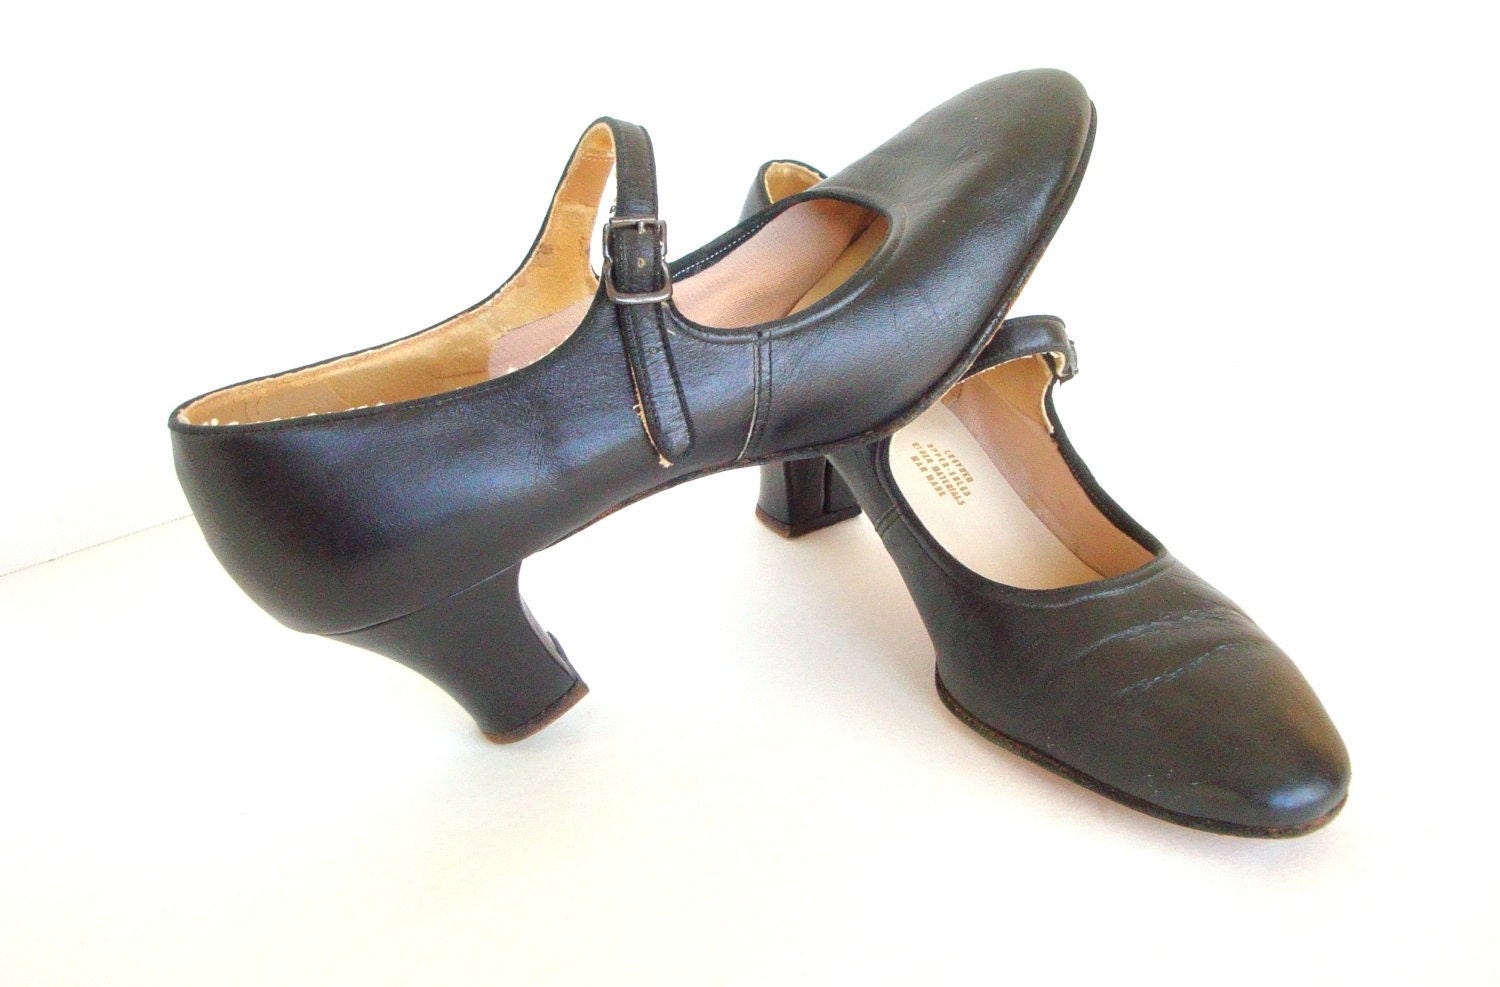 poppins style shoes vintage tap shoes black tap